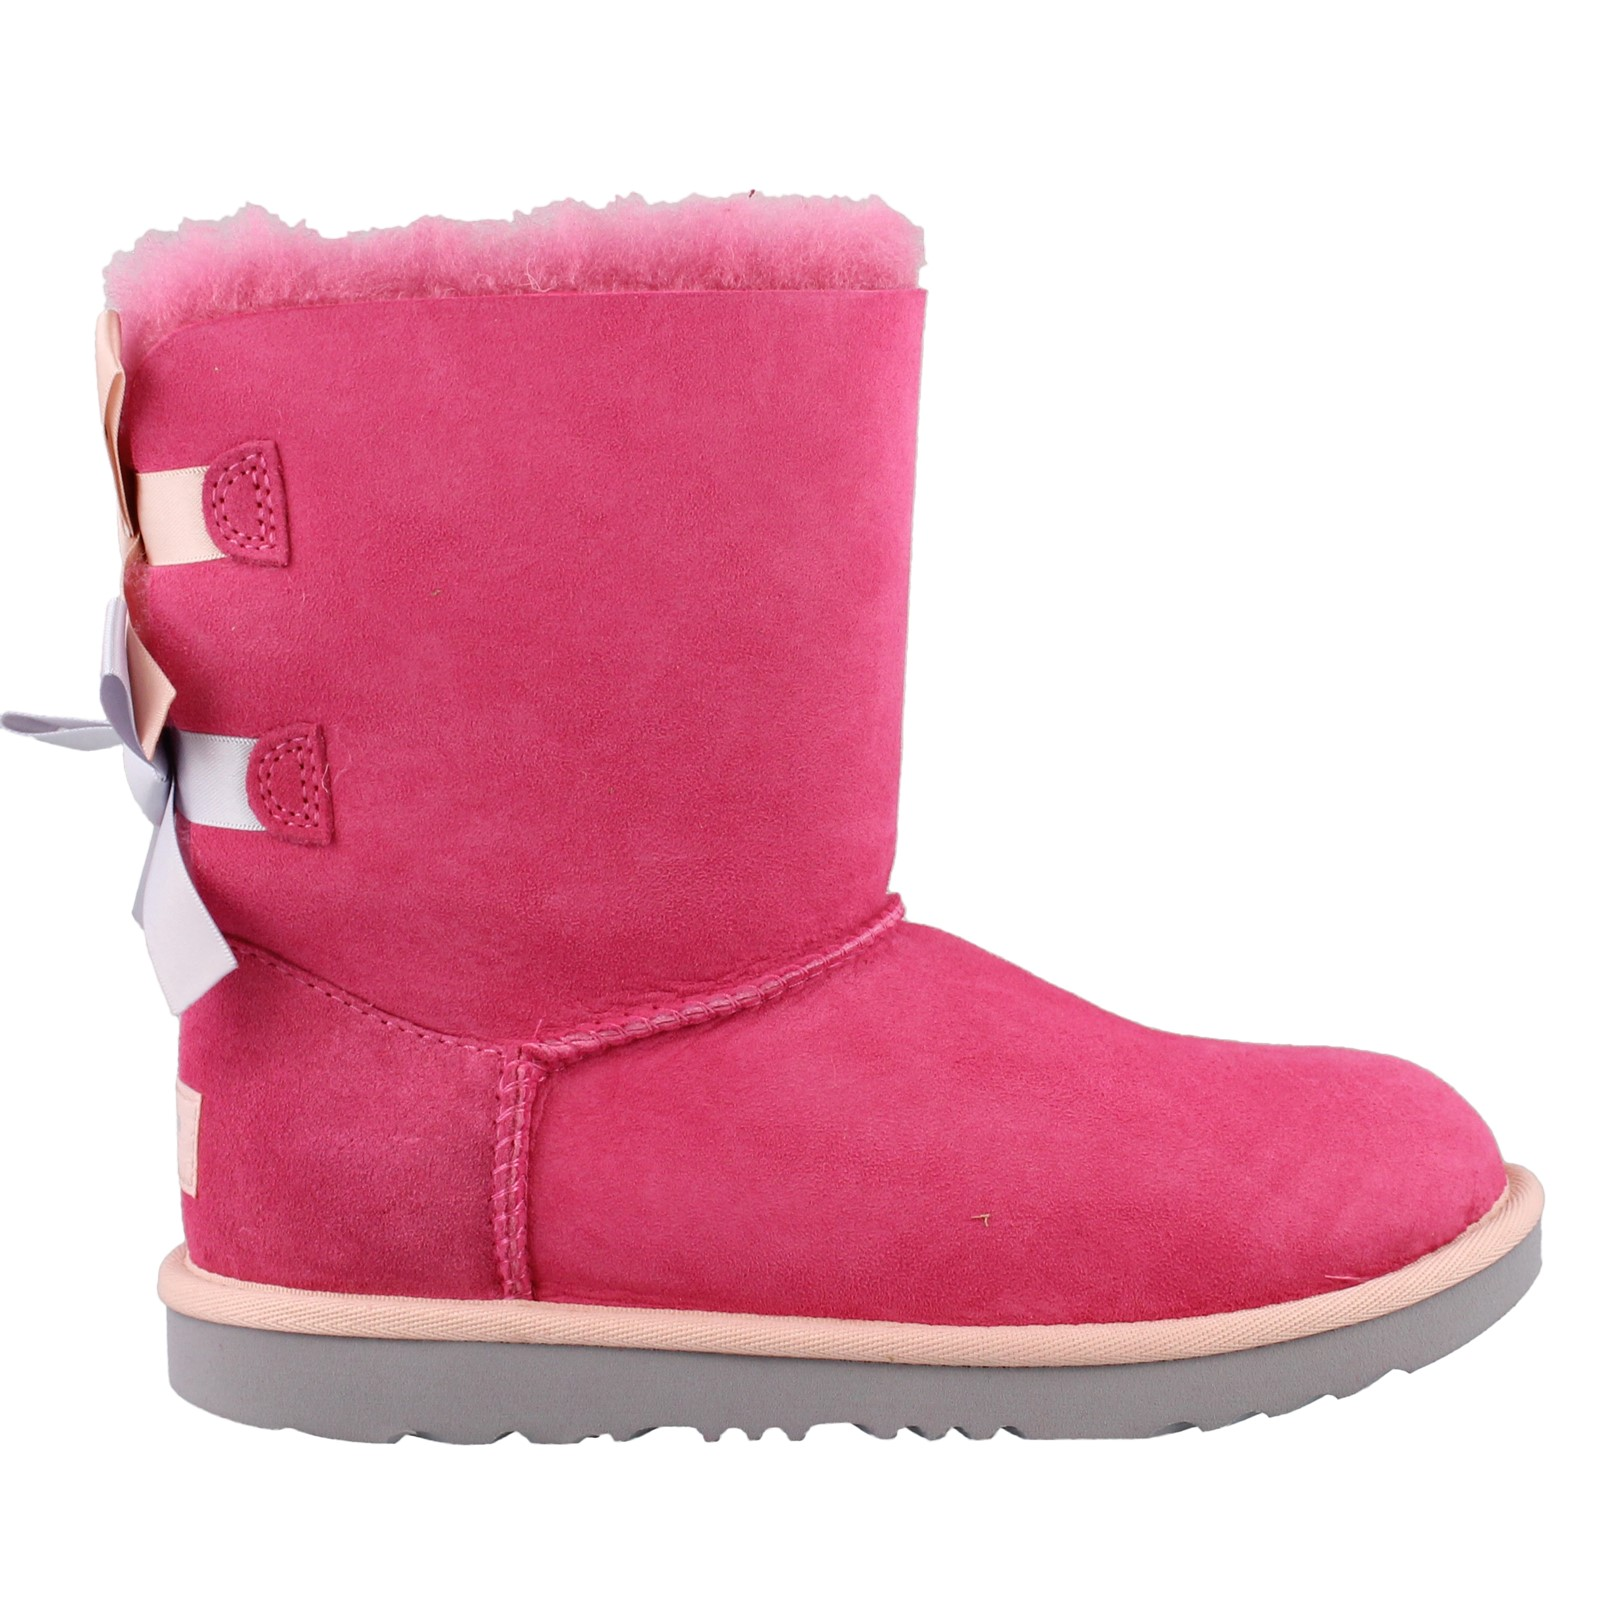 c0a4b630a30 Girl's Ugg Kids, Bailey Bow II Sheepskin Boots